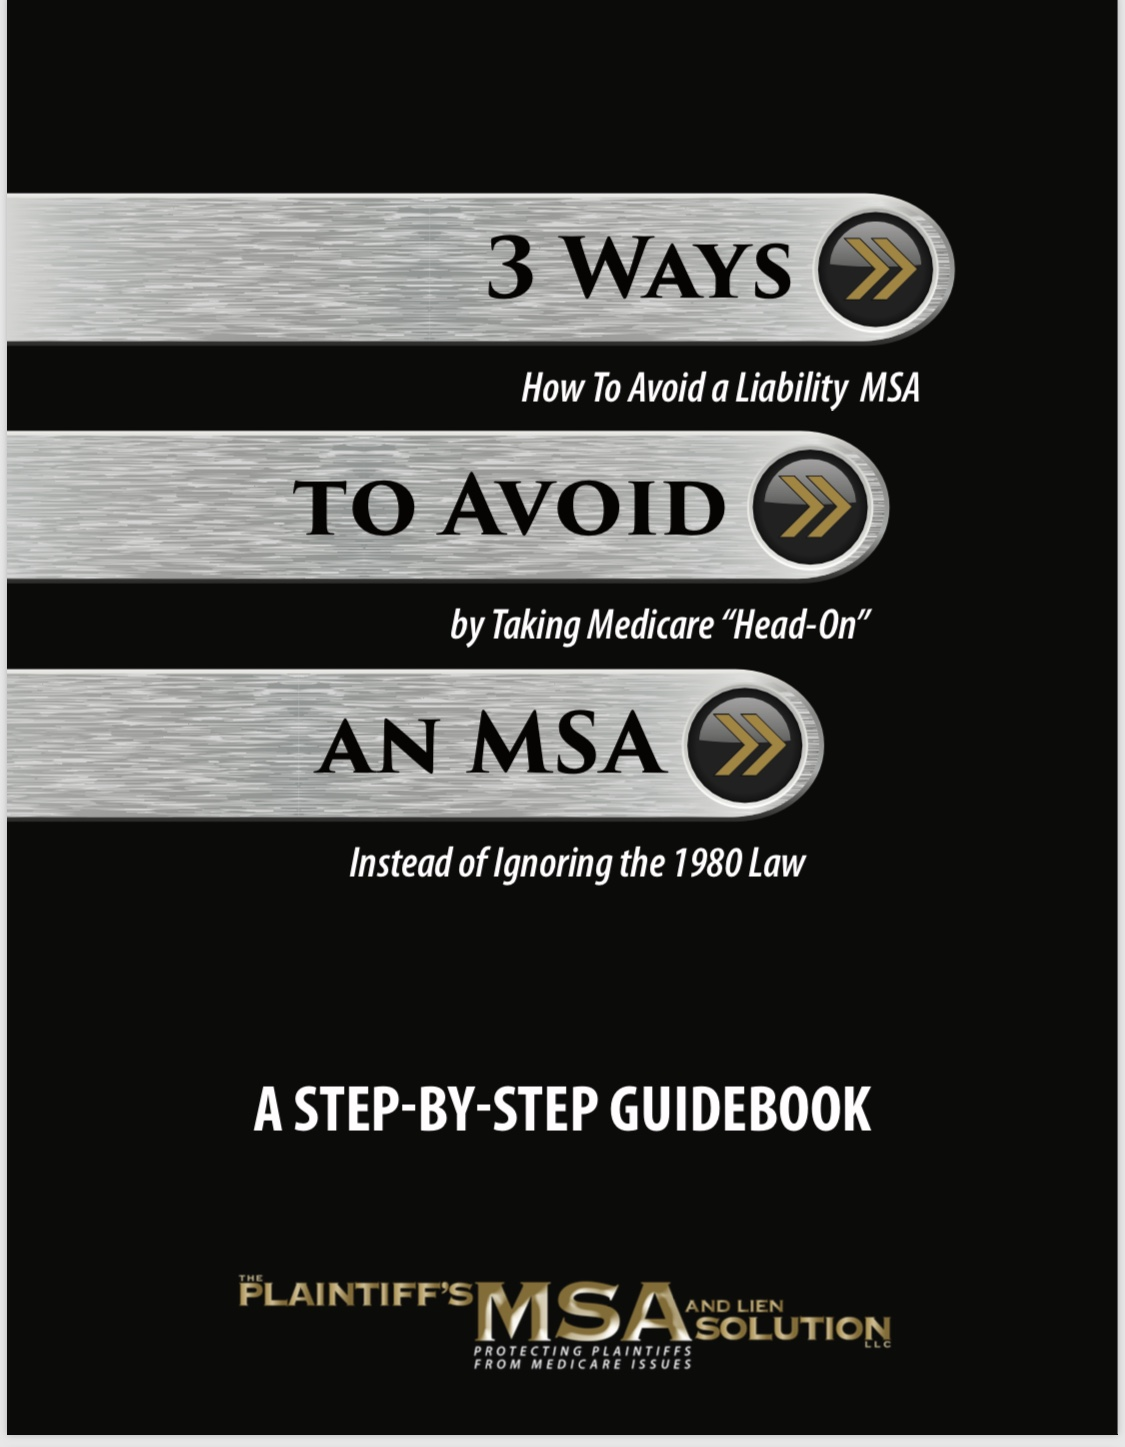 3 Ways to Avoid An MSA - The PLAINTIFF'S MSA AND LIEN SOLUTION